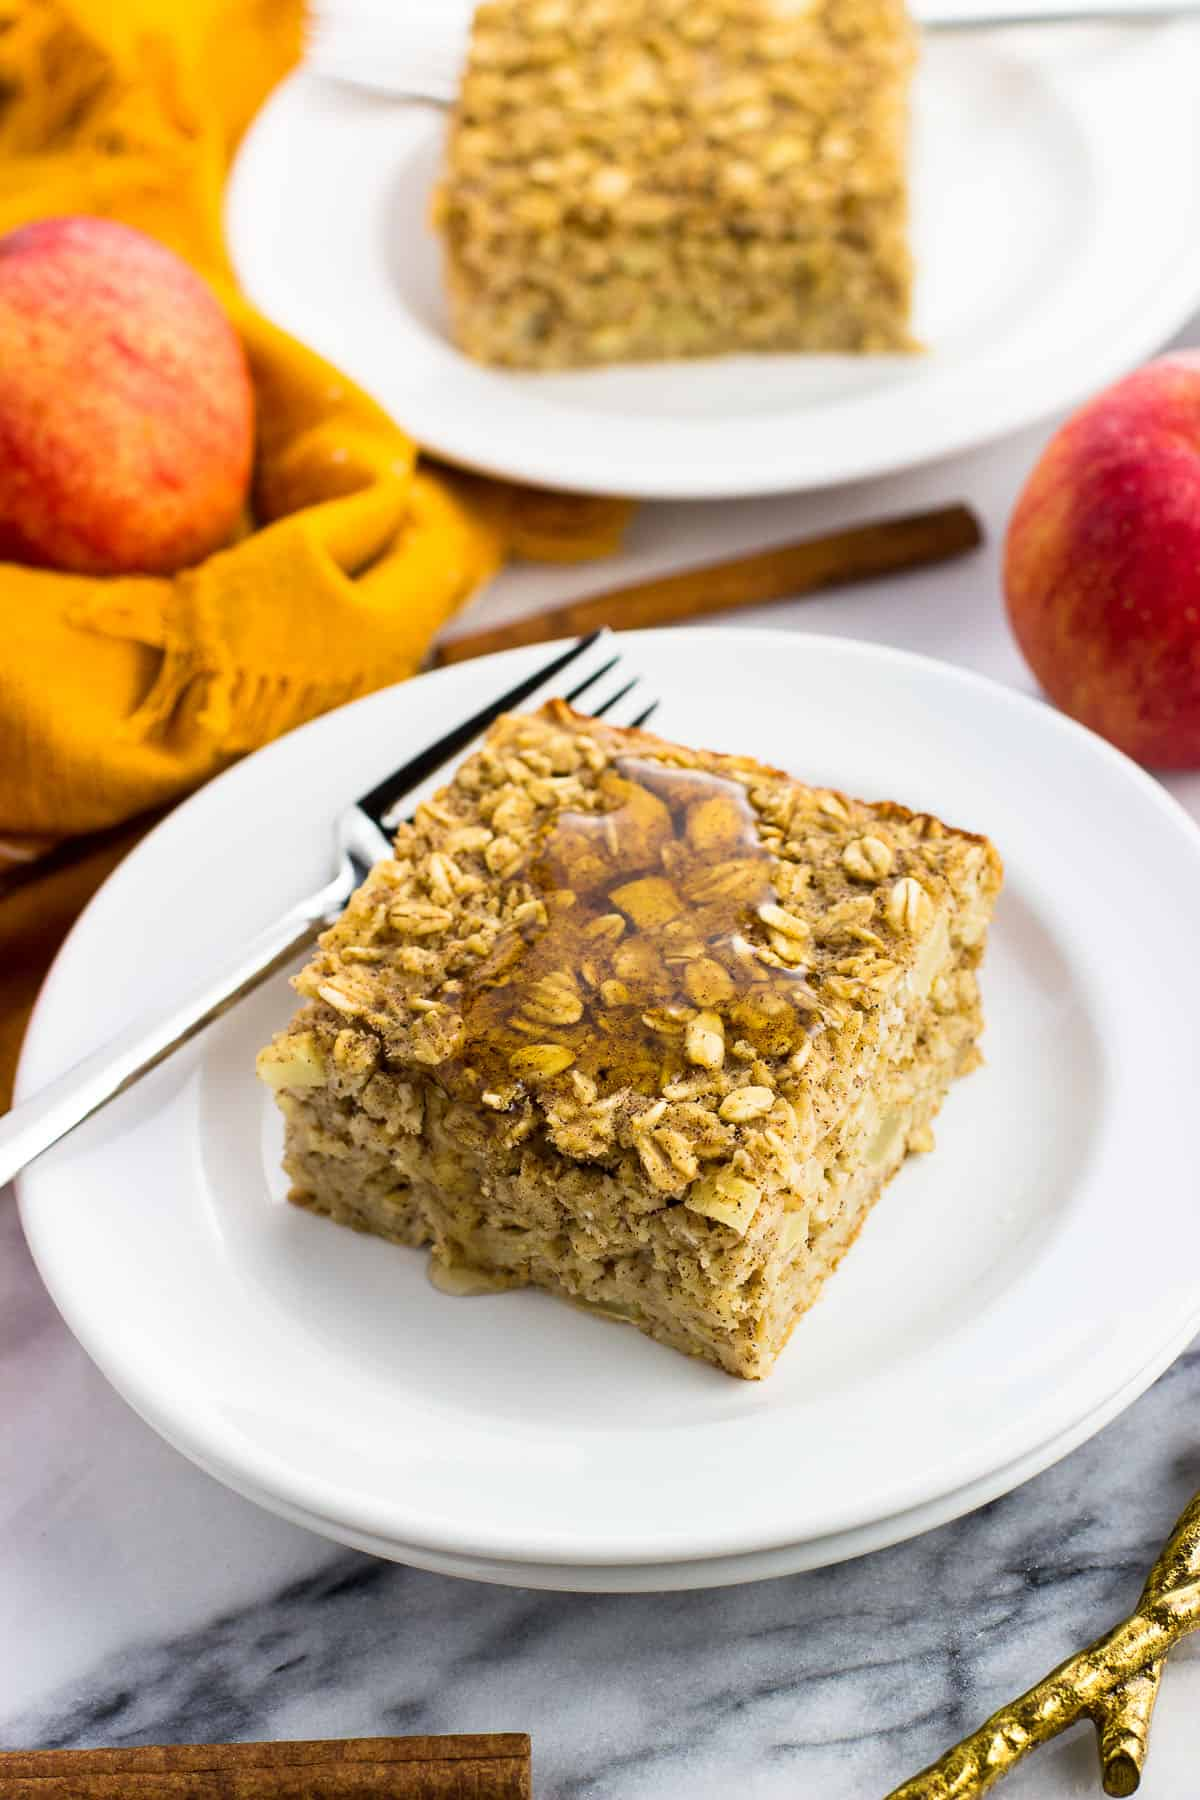 A piece of apple baked oatmeal on a plate with a fork next to a linen napkin, apples, and a cinnamon stick.